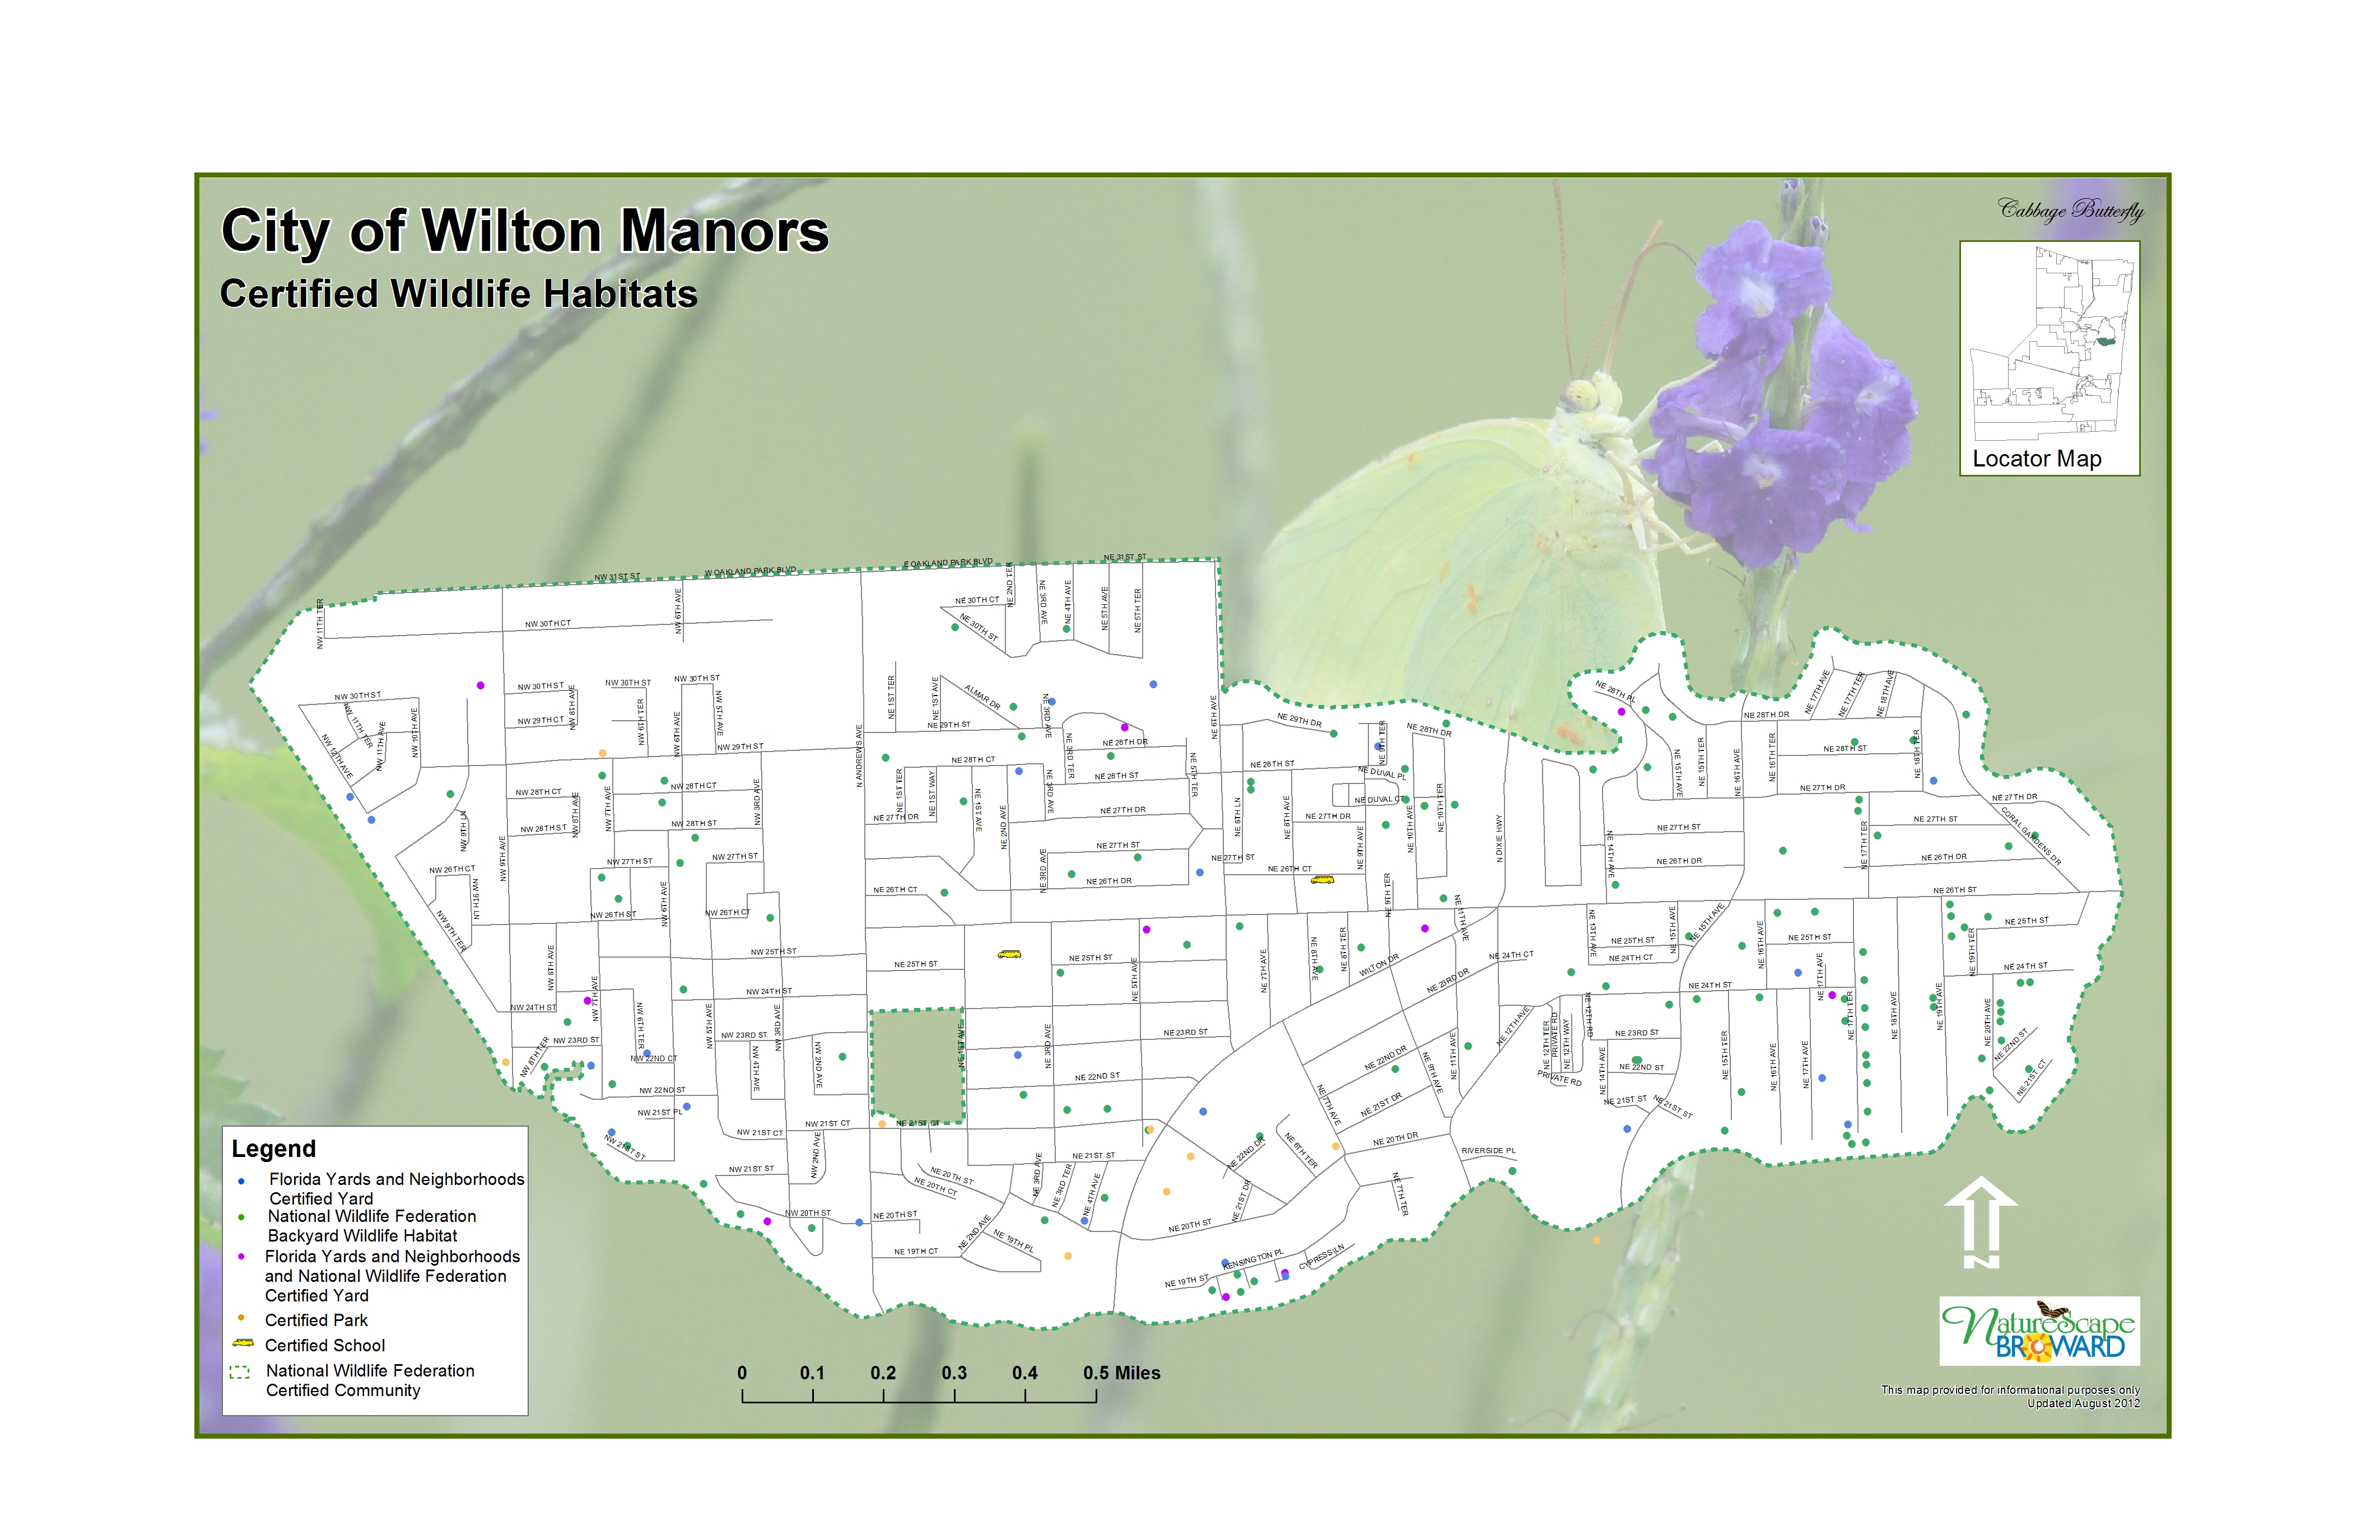 Wilton Manors Habitats 2012 - Island city                         is the 17th City in the Nation to be designated                         as a Certified Wildlife Habitat